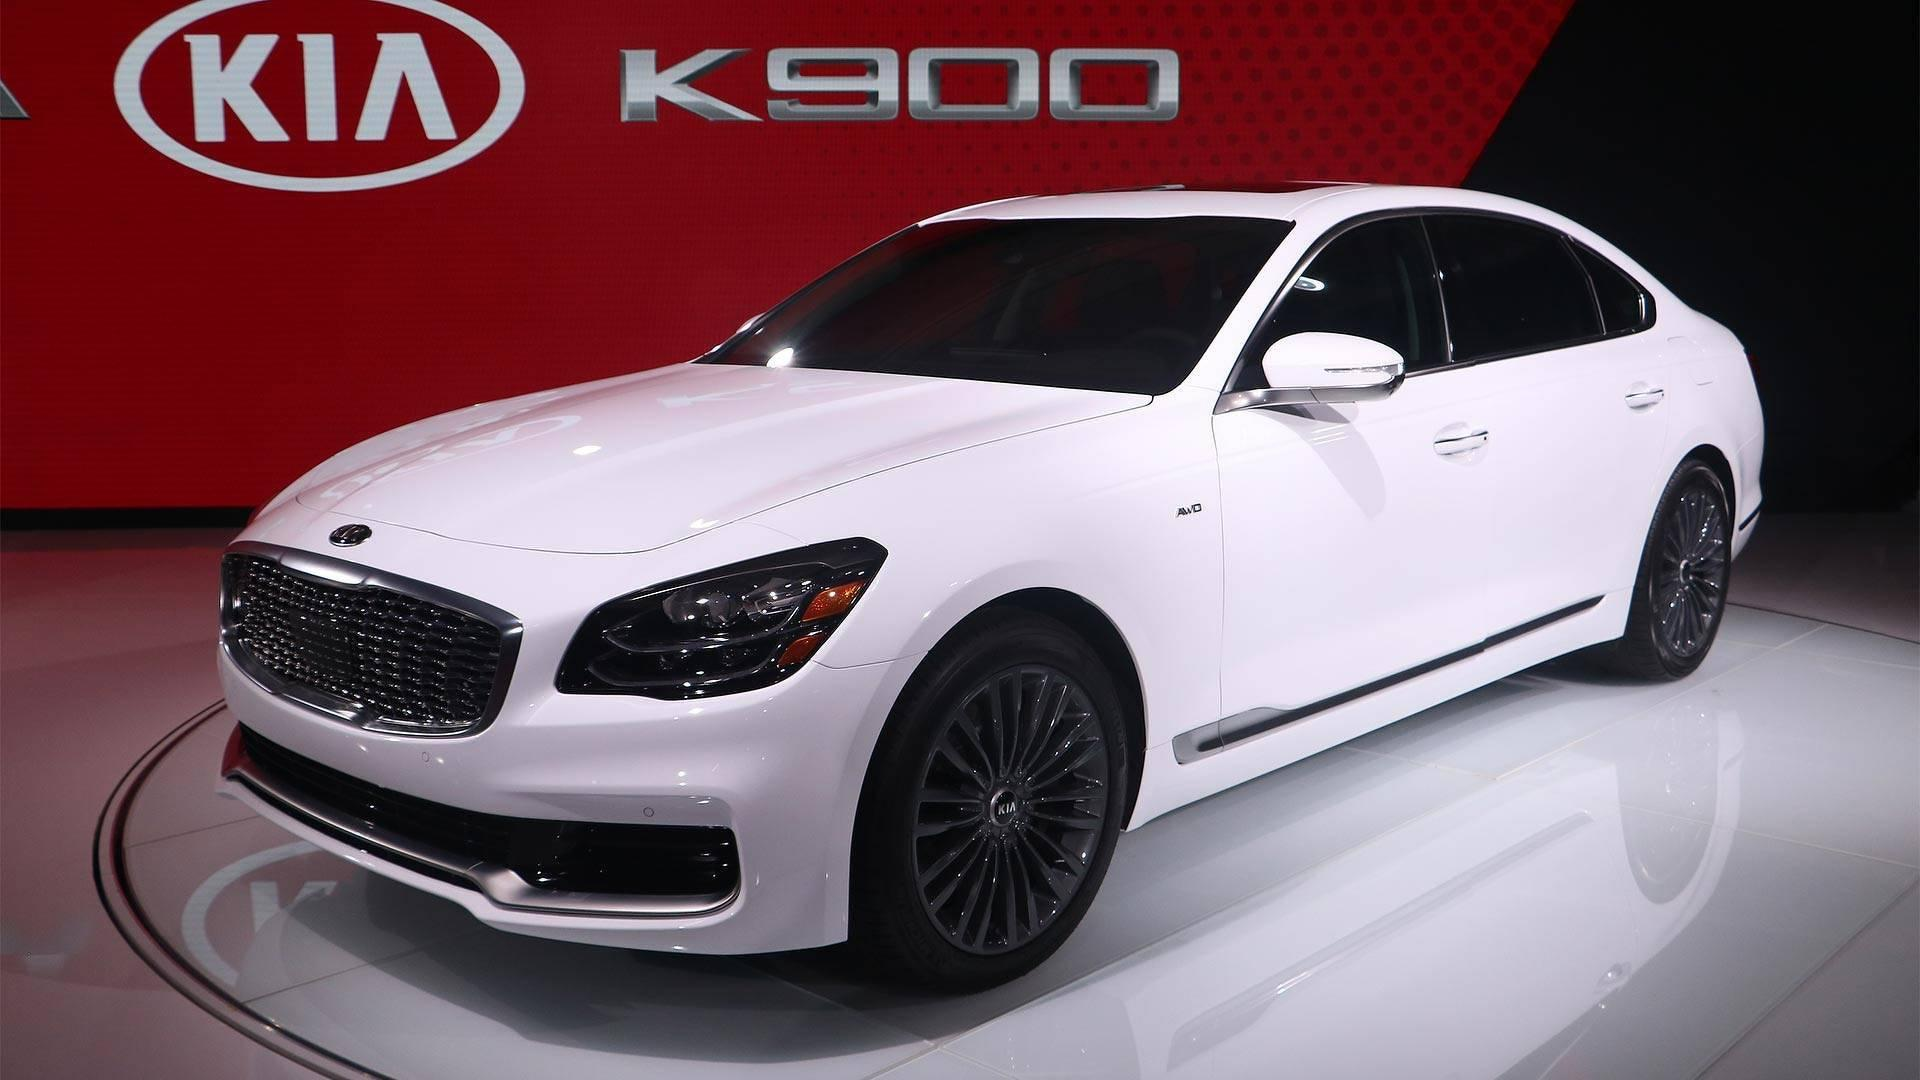 """<p><a href=""""https://www.motor1.com/kia/"""" rel=""""nofollow noopener"""" target=""""_blank"""" data-ylk=""""slk:Kia"""" class=""""link rapid-noclick-resp"""">Kia</a> knows how to design an attractive vehicle. The <a href=""""https://www.motor1.com/kia/stinger/"""" rel=""""nofollow noopener"""" target=""""_blank"""" data-ylk=""""slk:Stinger"""" class=""""link rapid-noclick-resp"""">Stinger</a> is the primary current example of the company's styling acumen, but the refreshed Optima and even the Stonic prove that the sport sedan isn't a one-off in the company's ability to create a pretty product. So what's up with the <a href=""""https://www.motor1.com/kia/k900/"""" rel=""""nofollow noopener"""" target=""""_blank"""" data-ylk=""""slk:K900"""" class=""""link rapid-noclick-resp"""">K900</a>?</p>"""